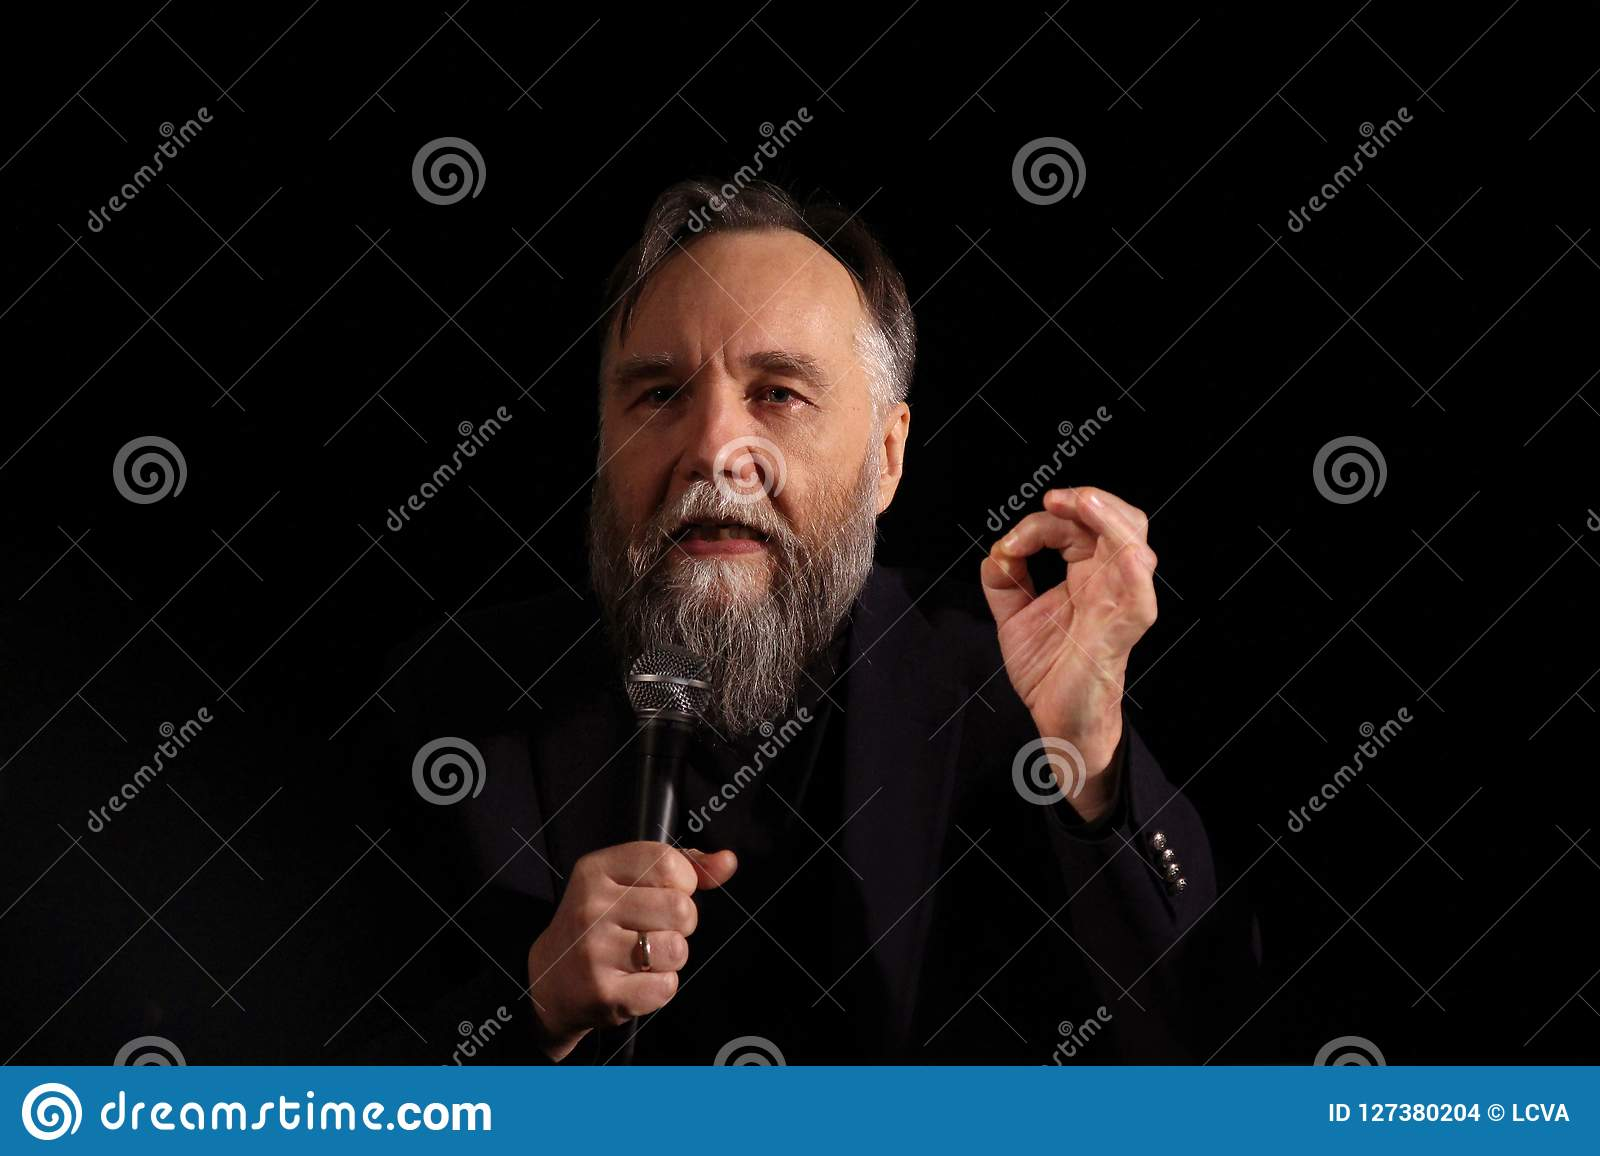 Aleksandr Dugin, Russian political analyst - press conference in